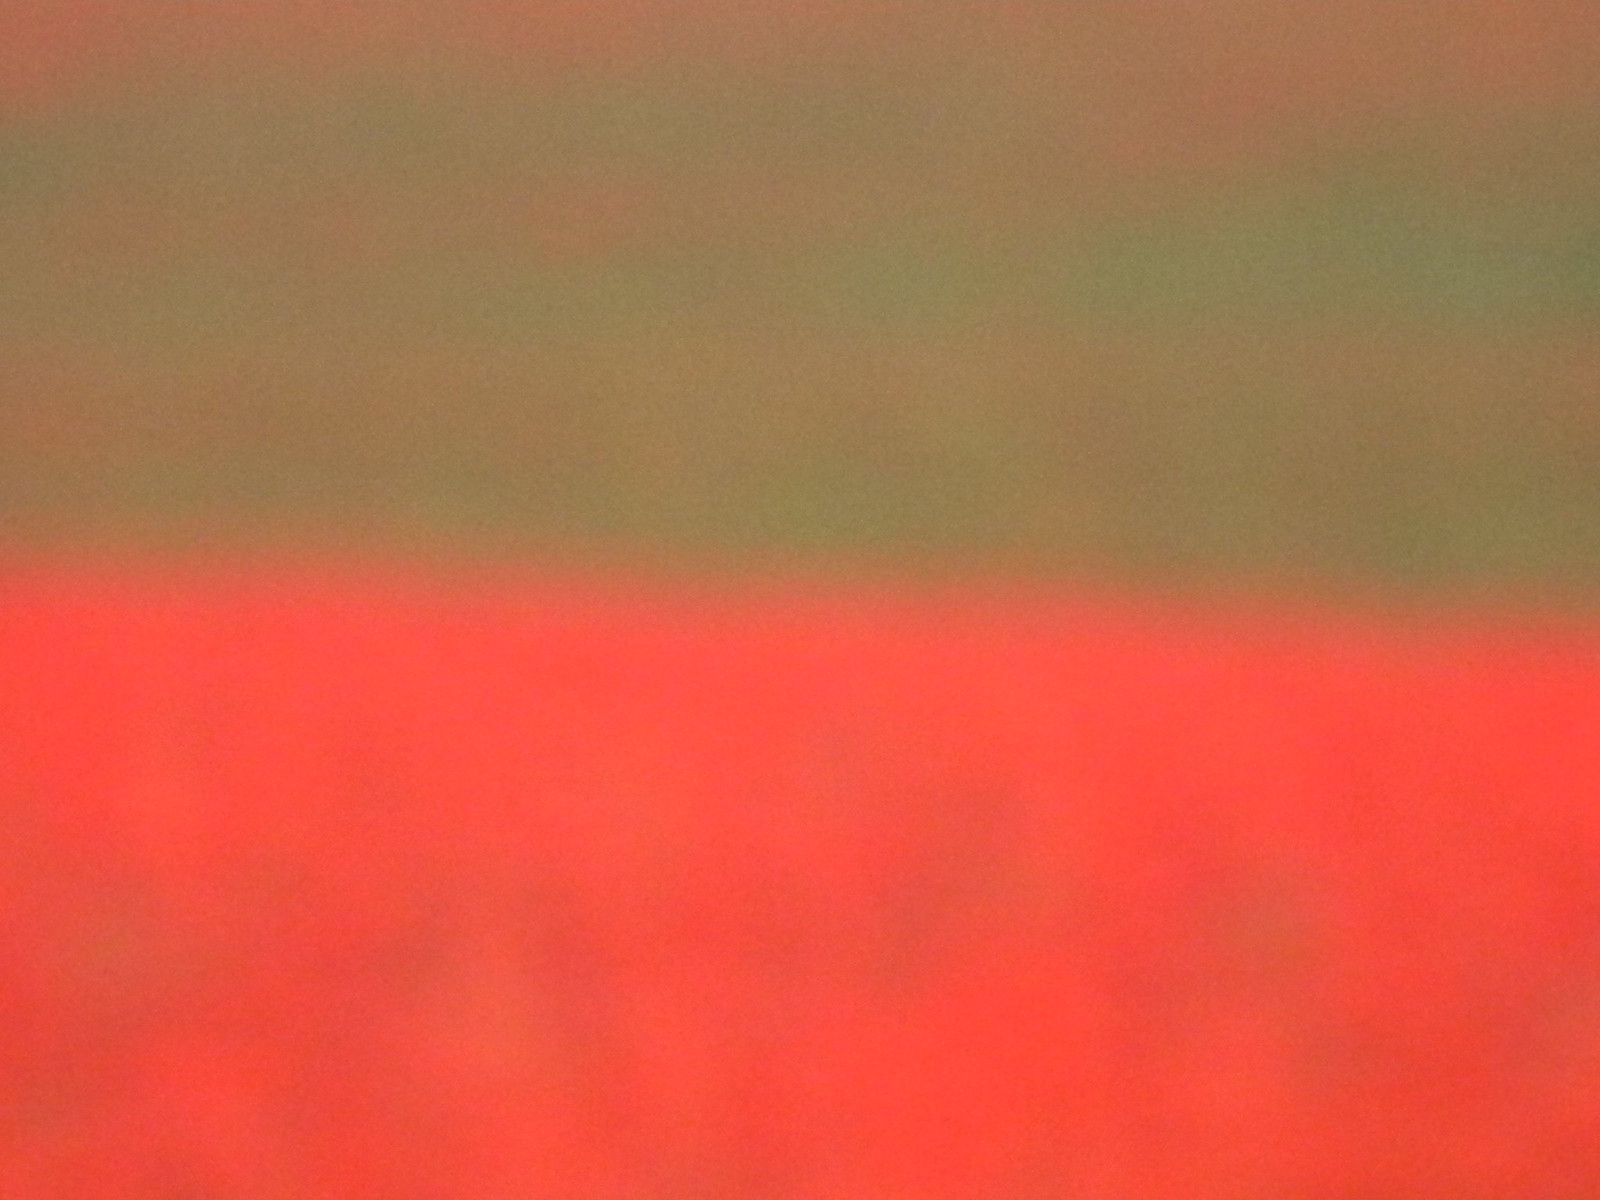 Poppy field near Falmer Rothko-style Hassocks to Brighton